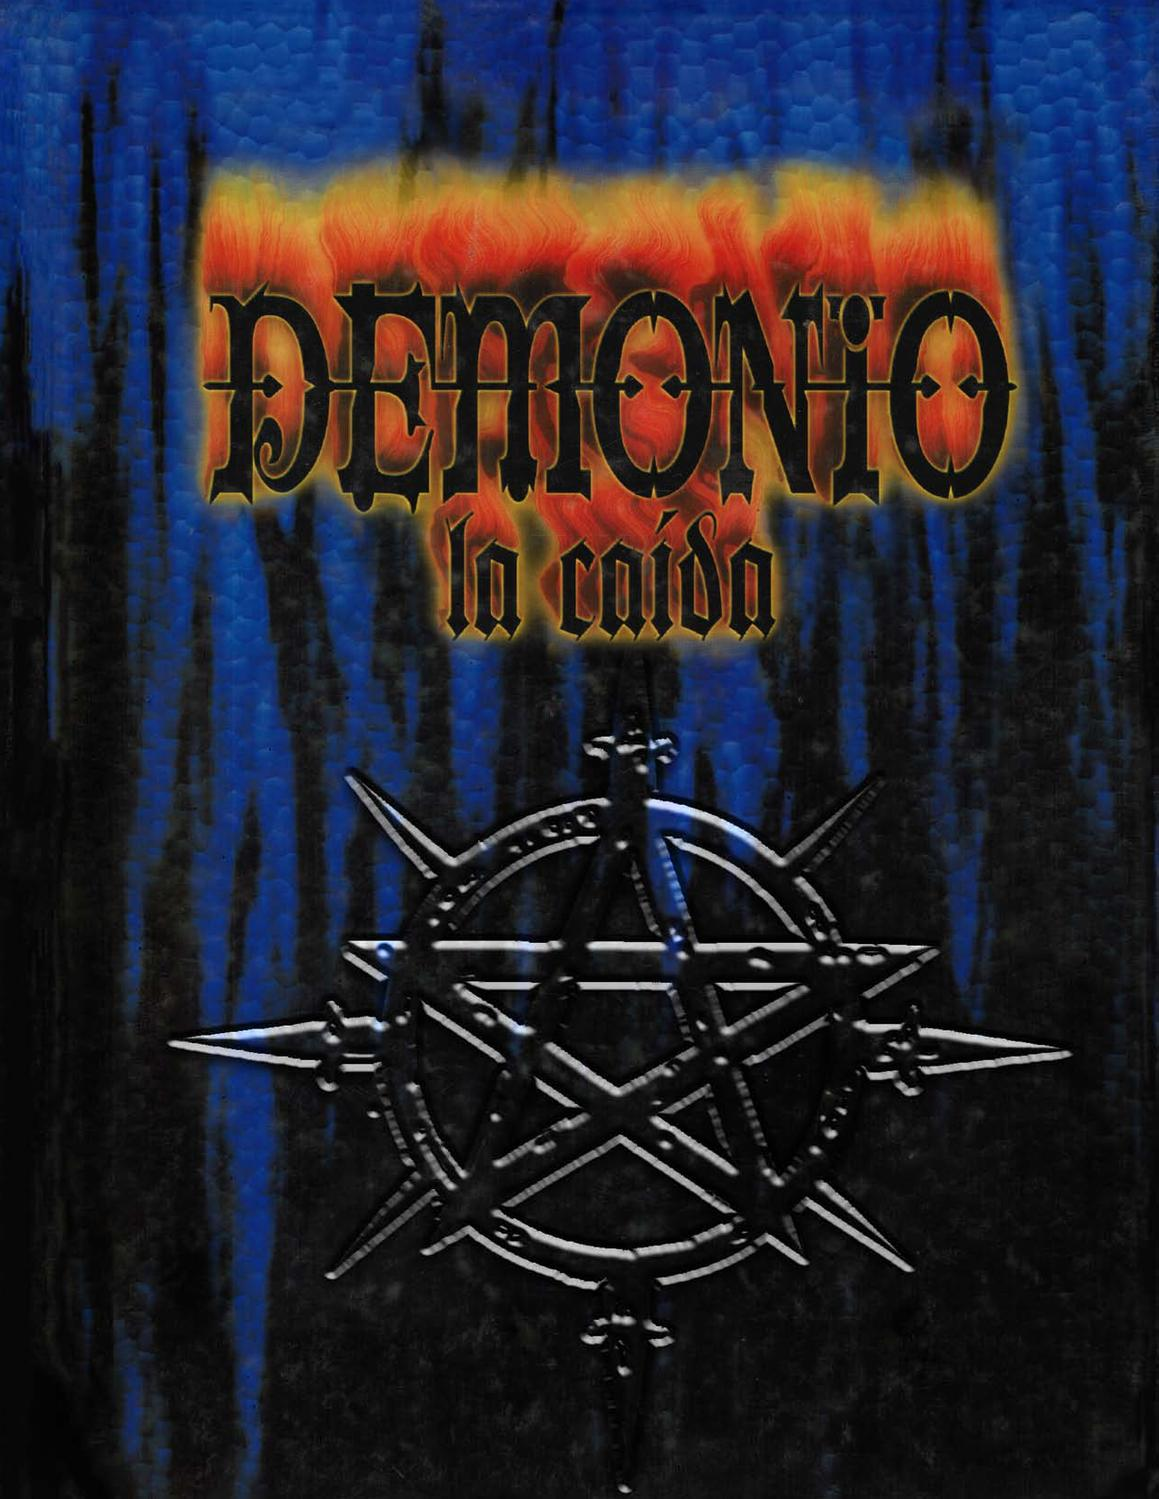 Demonio la caida by auron d black issuu for Sillas para maquillar